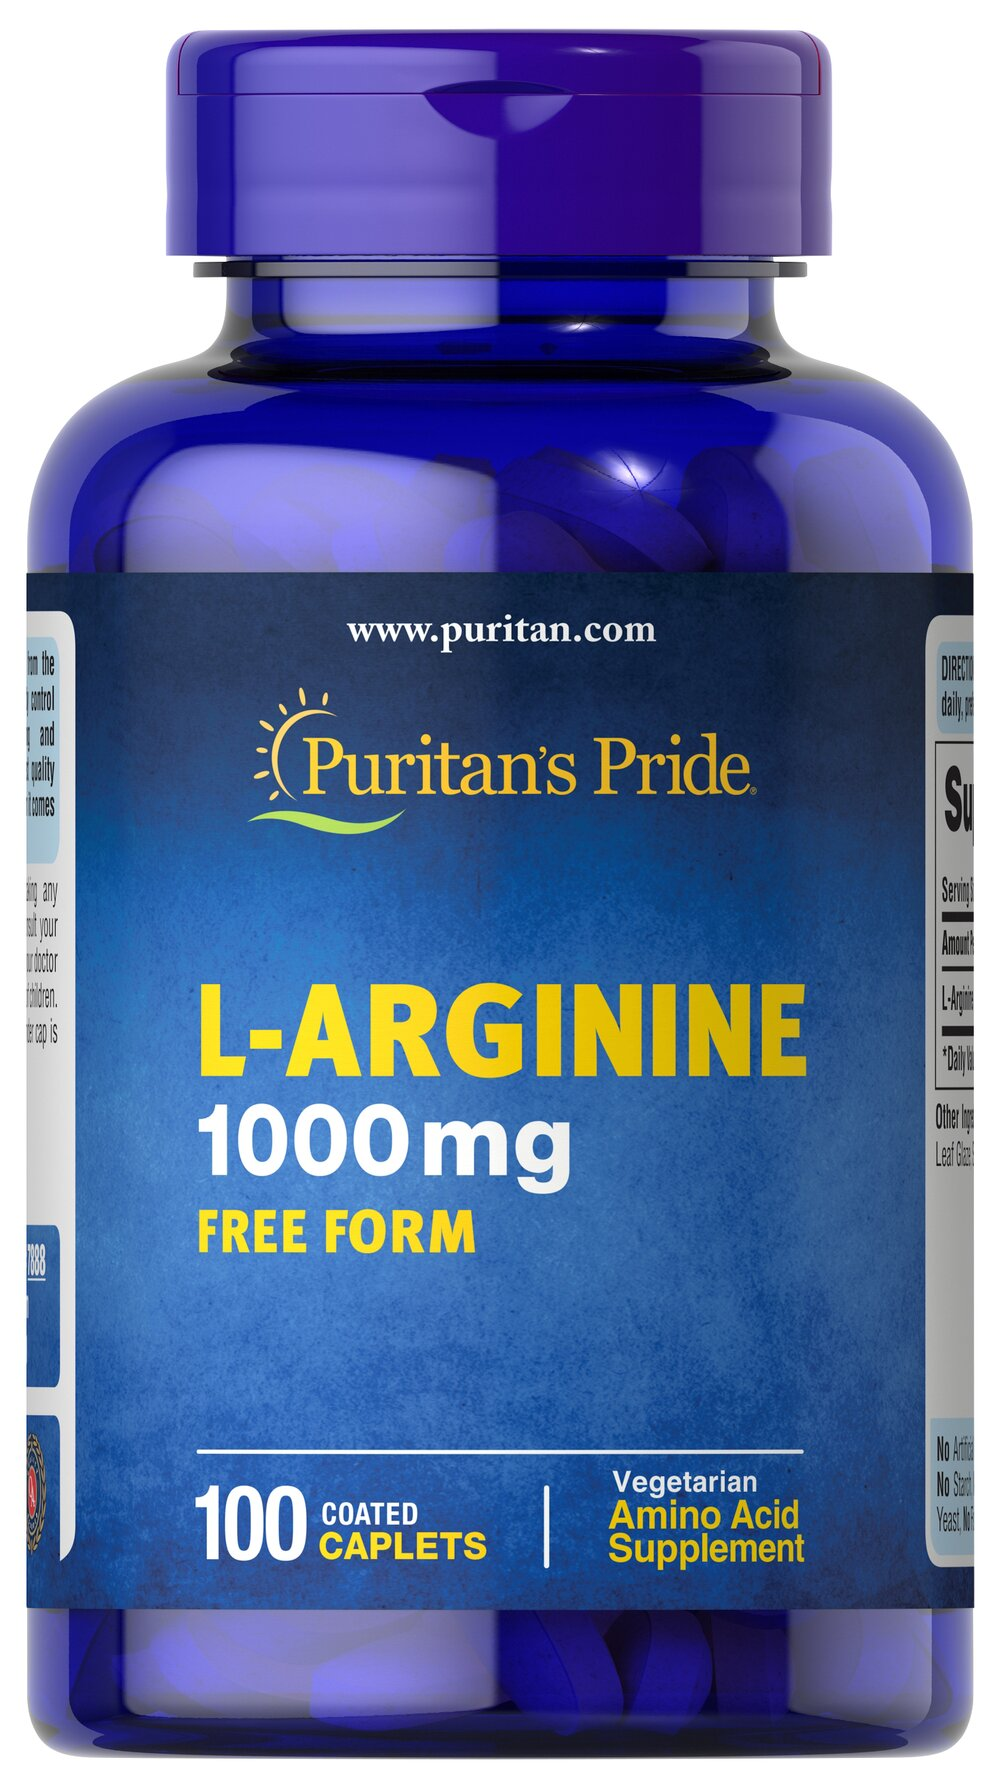 L-Arginine 1000 mg <p>Arginine is one of 20 amino acids, the building blocks of protein.** Arginine can  serve as a source of energy, and is involved in various pathways throughout the body.** Arginine supports the effect of exercise and is one of the most important amino acids involved in immune function.** Adults can take one caplet daily. </p> 100 Caplets 1000 mg $21.99